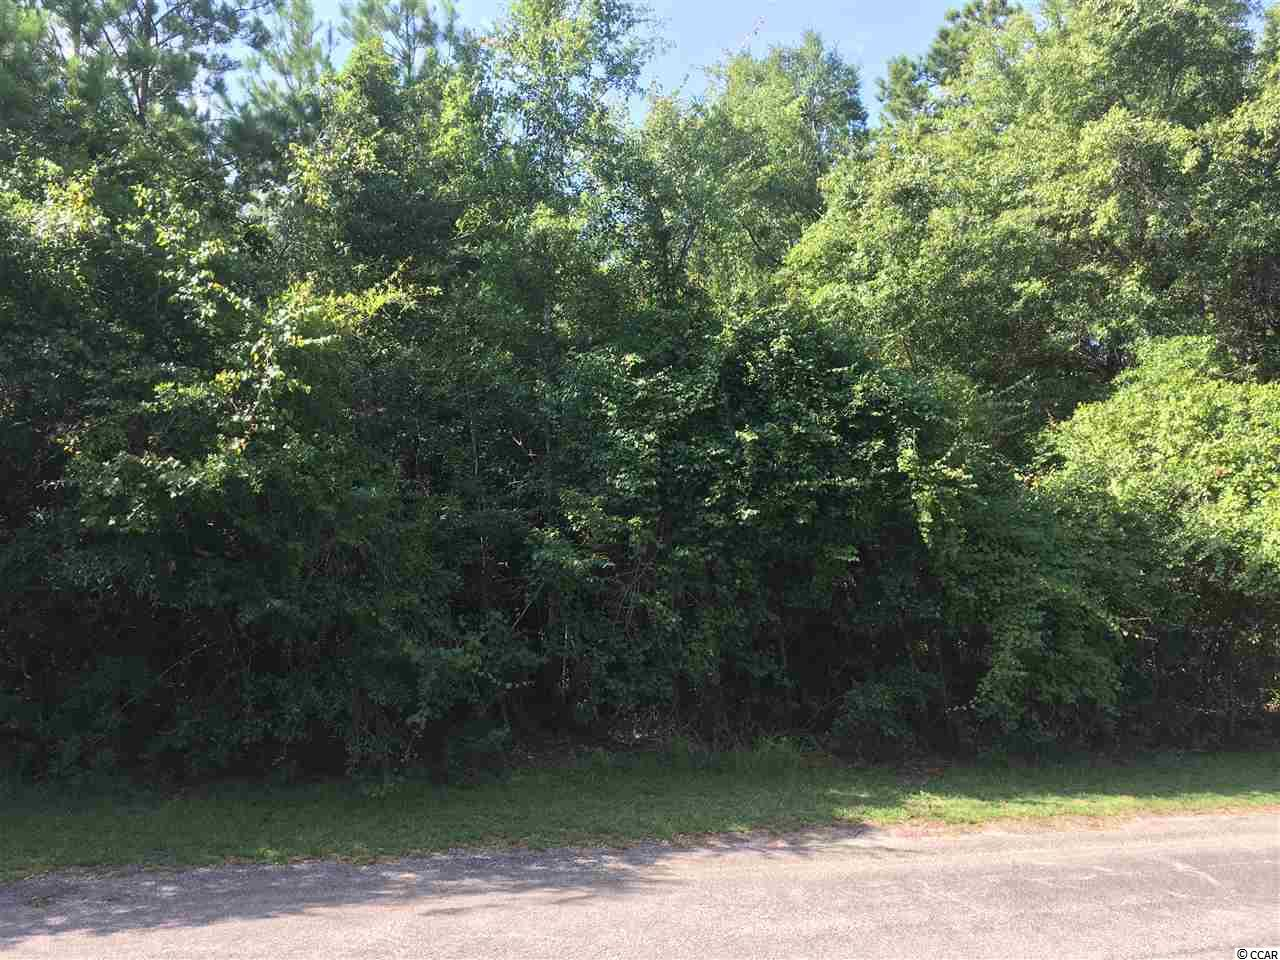 THIS LOT IS READY FOR A NEW HOME WITH A LITTLE CLEARING AND DREAMS CAN COME TRUE.  OWNER WILL PAY FOR A PERC TEST UPON ACCEPTABLE CONTRACT.   GREAT NEIGHBORHOOD FOR BOATING, GARDENING AND RELAXATION.  JUST AROUND THE CORNER TO THE BROWNS FERRY BOAT LANDING.  GREAT PRICE AND NO HOA FEES.